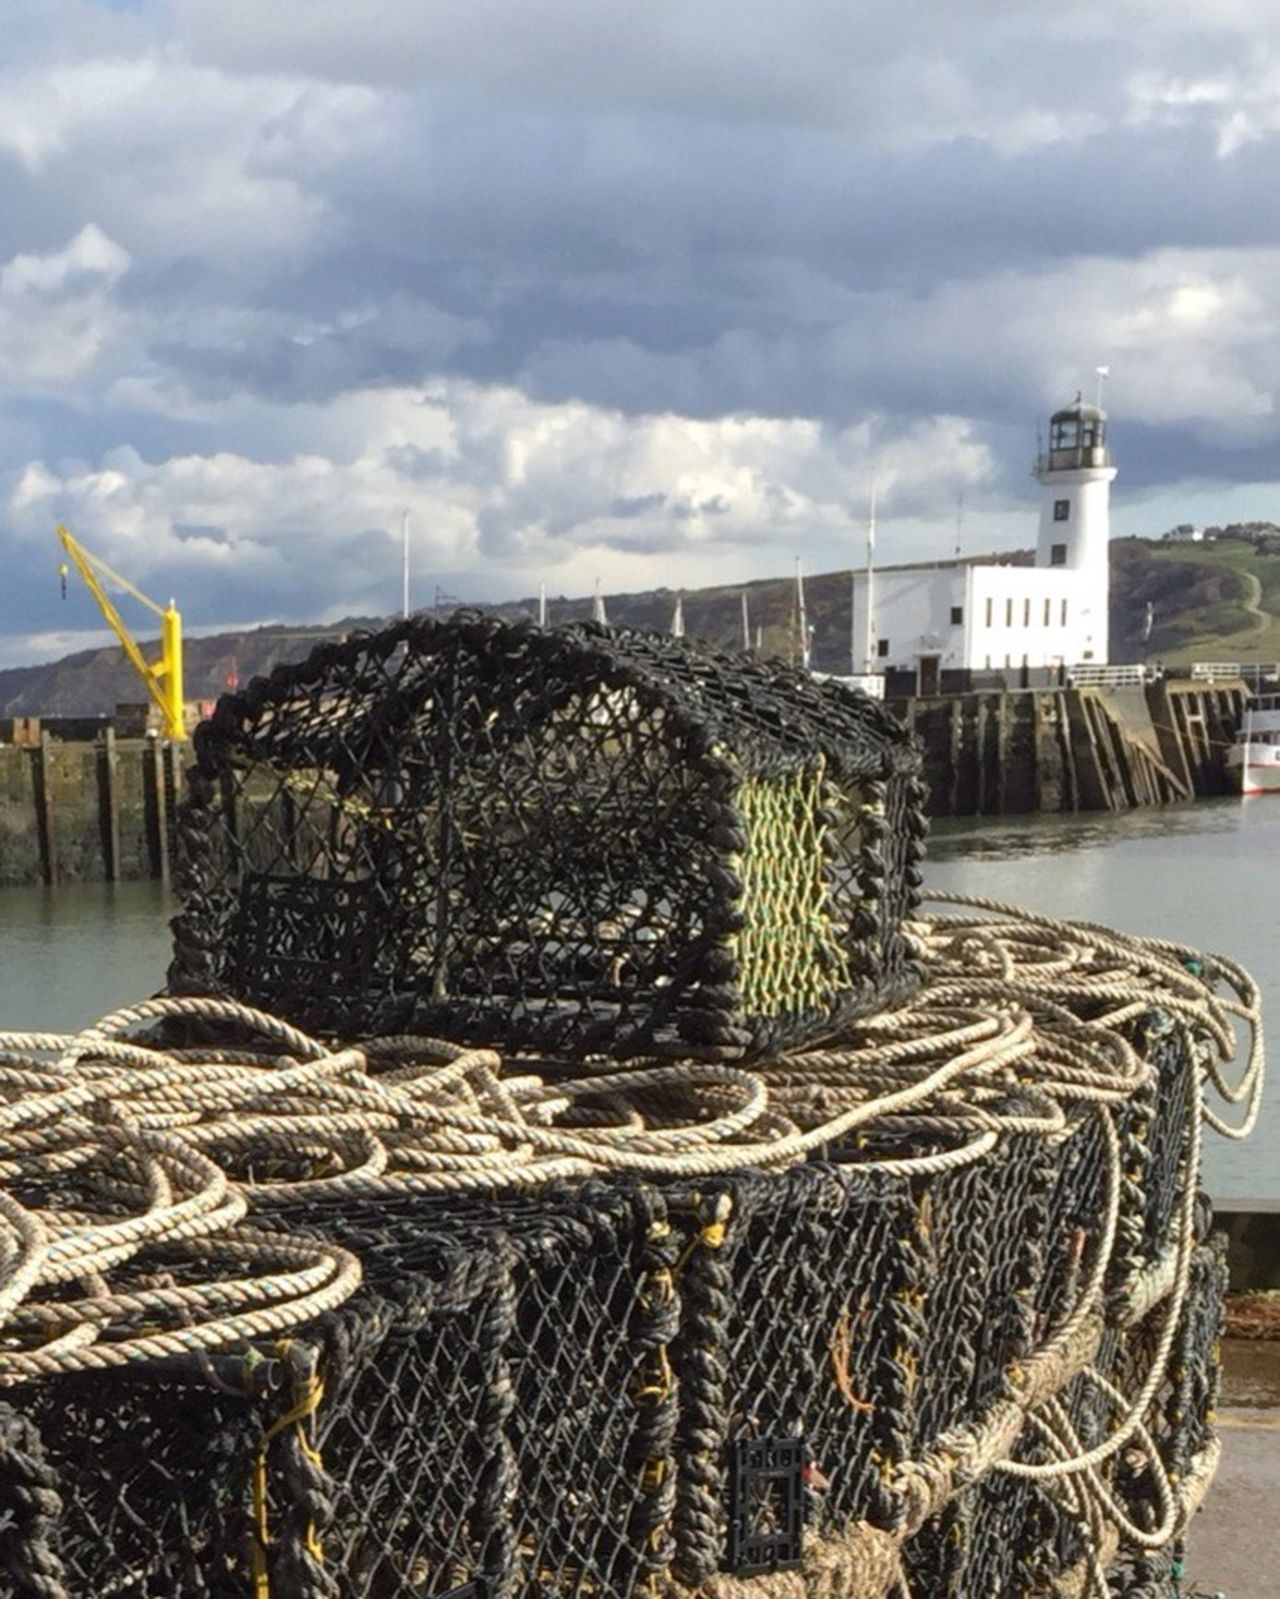 Lobster pots under leaden skies Scenic Landscape Scarborough Yorkshire Coast Coastal_collection Fishing Port Fishing Crab Pots Port Fishing Industry Lobster Pots Sea Leaden Skies Daytrip